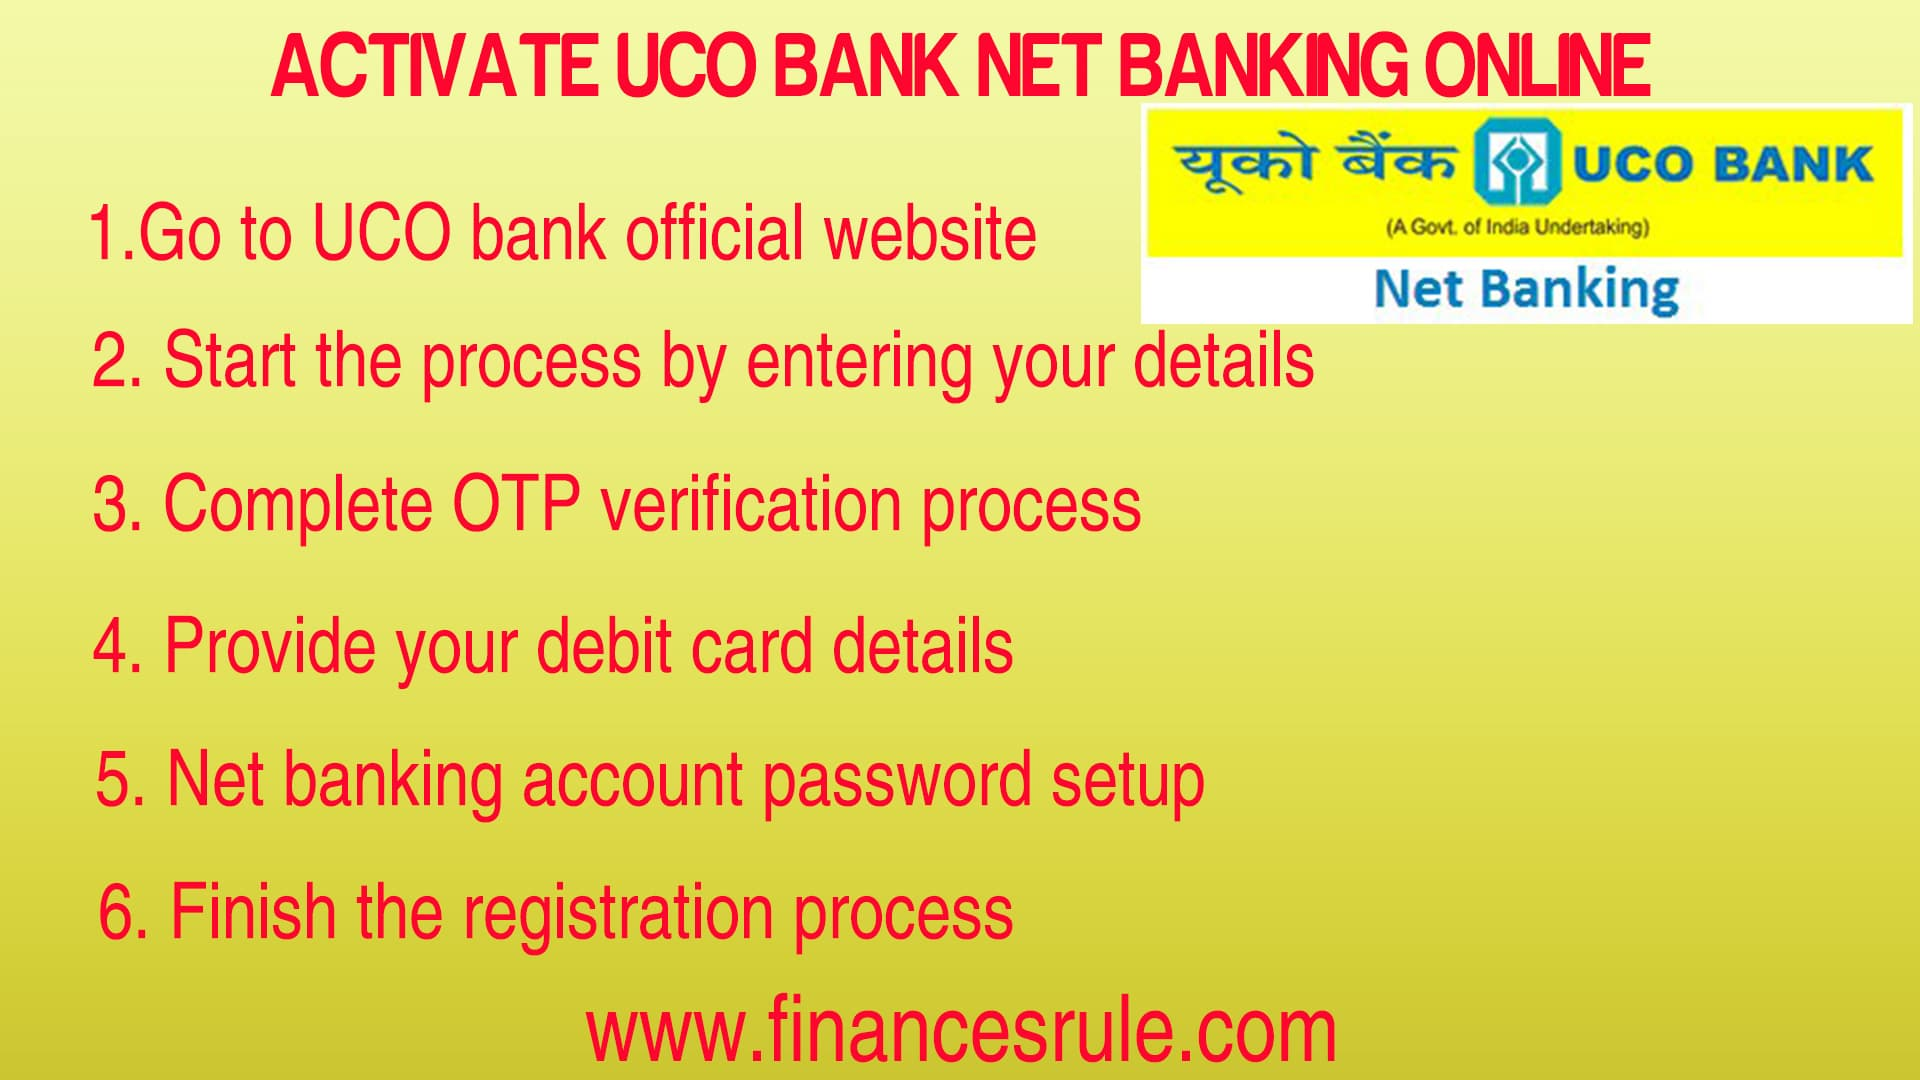 UCO Bank Net Banking